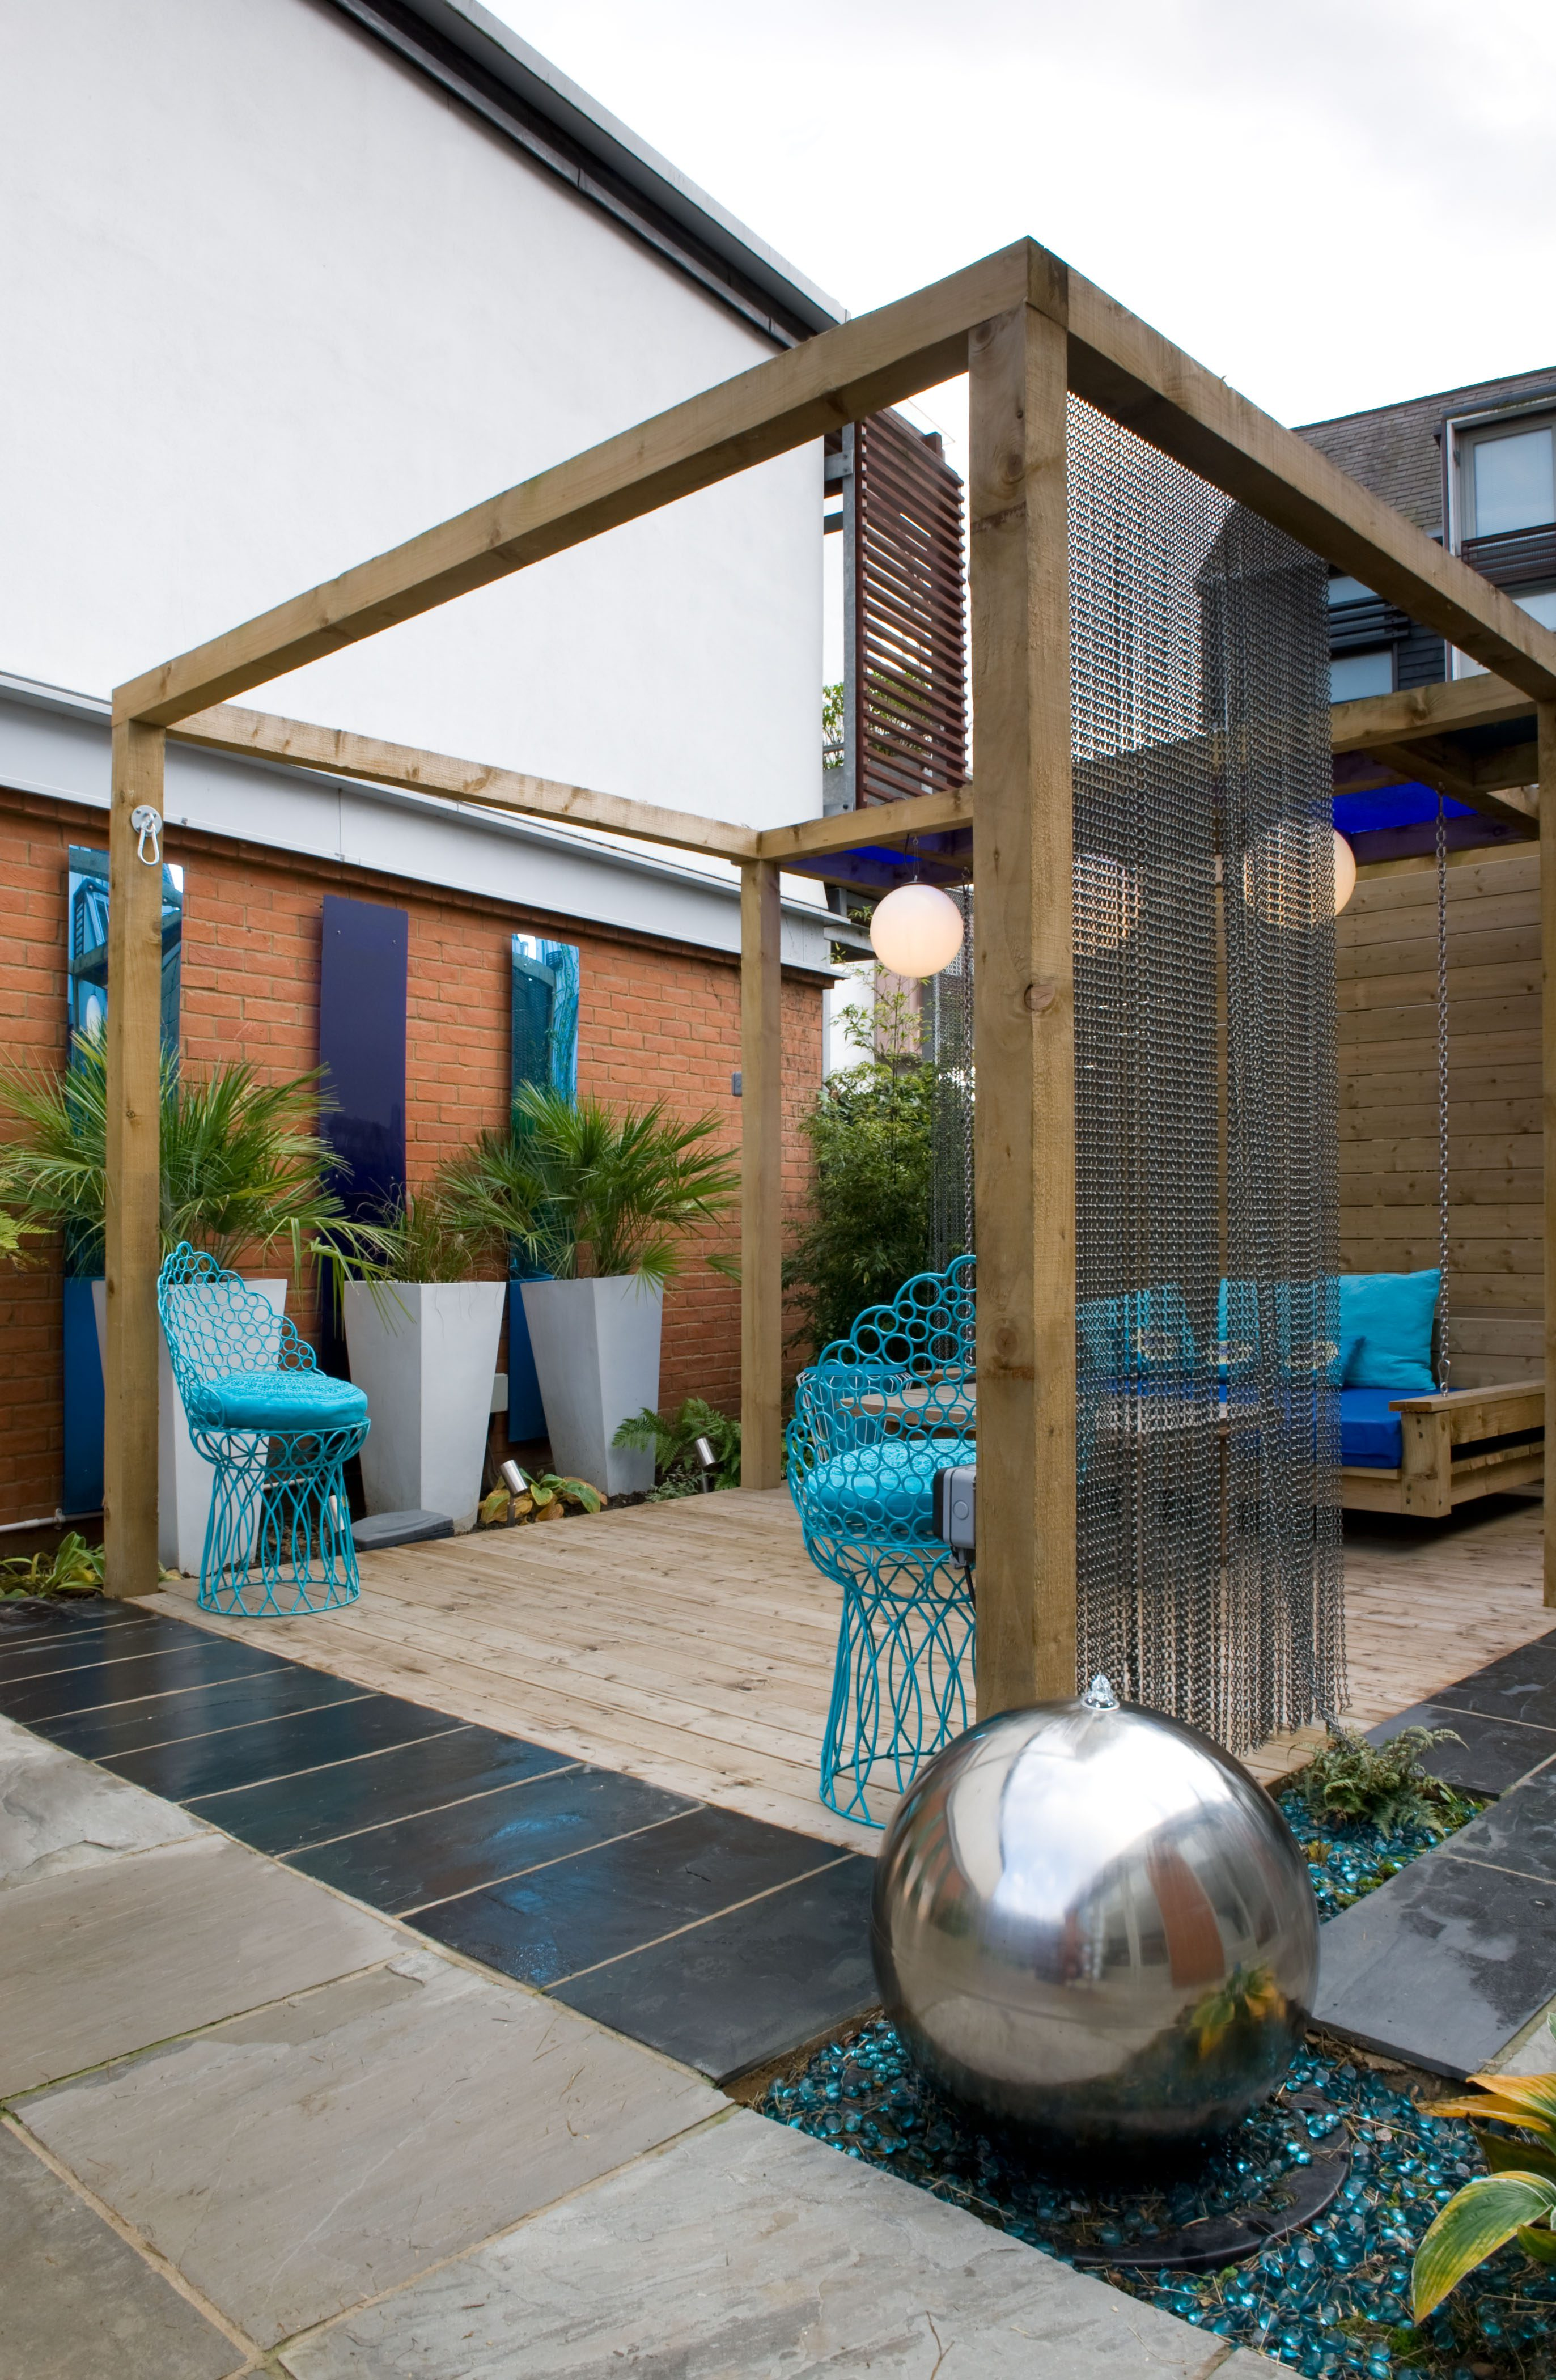 Courtyard Garden Design - how to create the perfect piazza ...